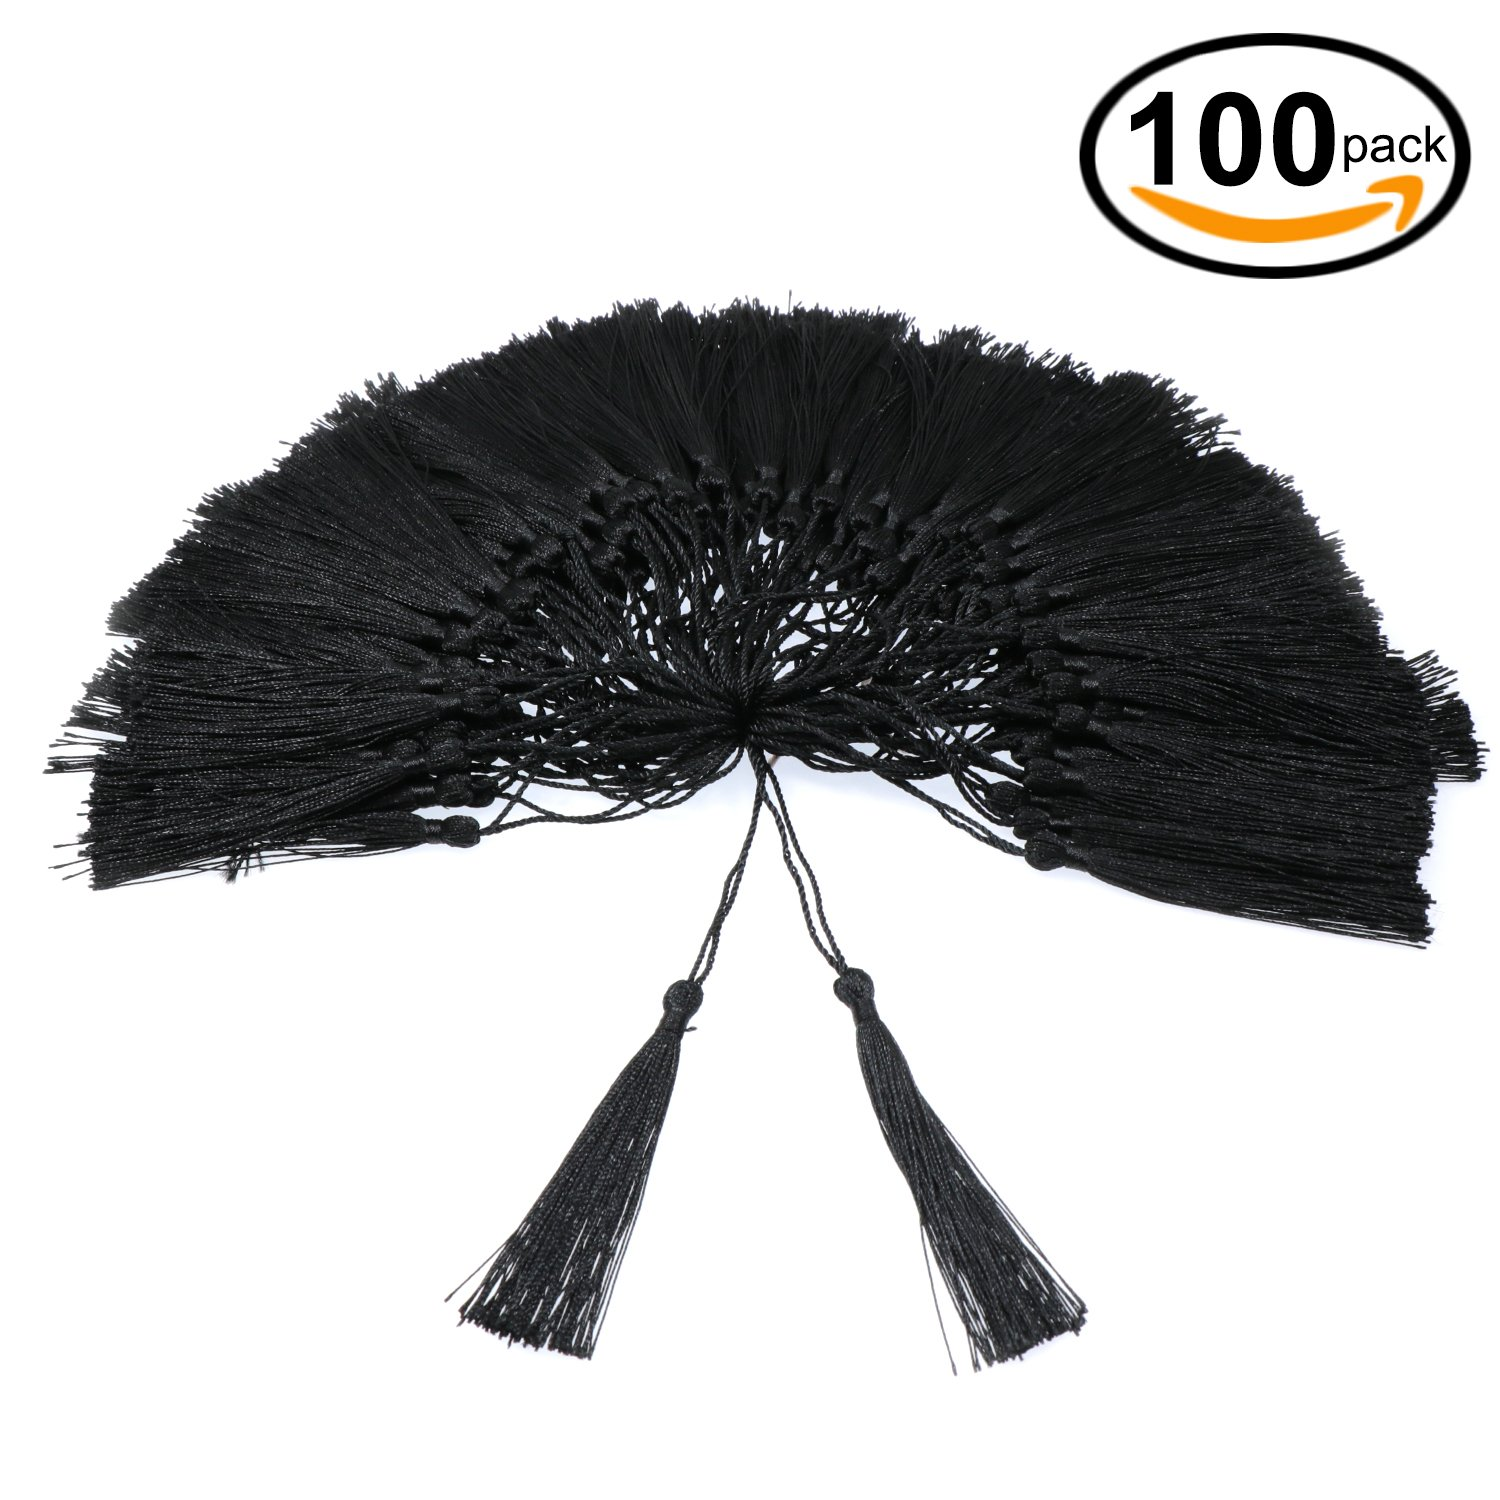 VAPKER 100 Pieces Black Tassels 13cm/5-Inch Silky Handmade Soft Tassels Floss bookmark Tassels with 2-Inch Cord Loop for Jewelry Making, DIY Projects, Bookmarks